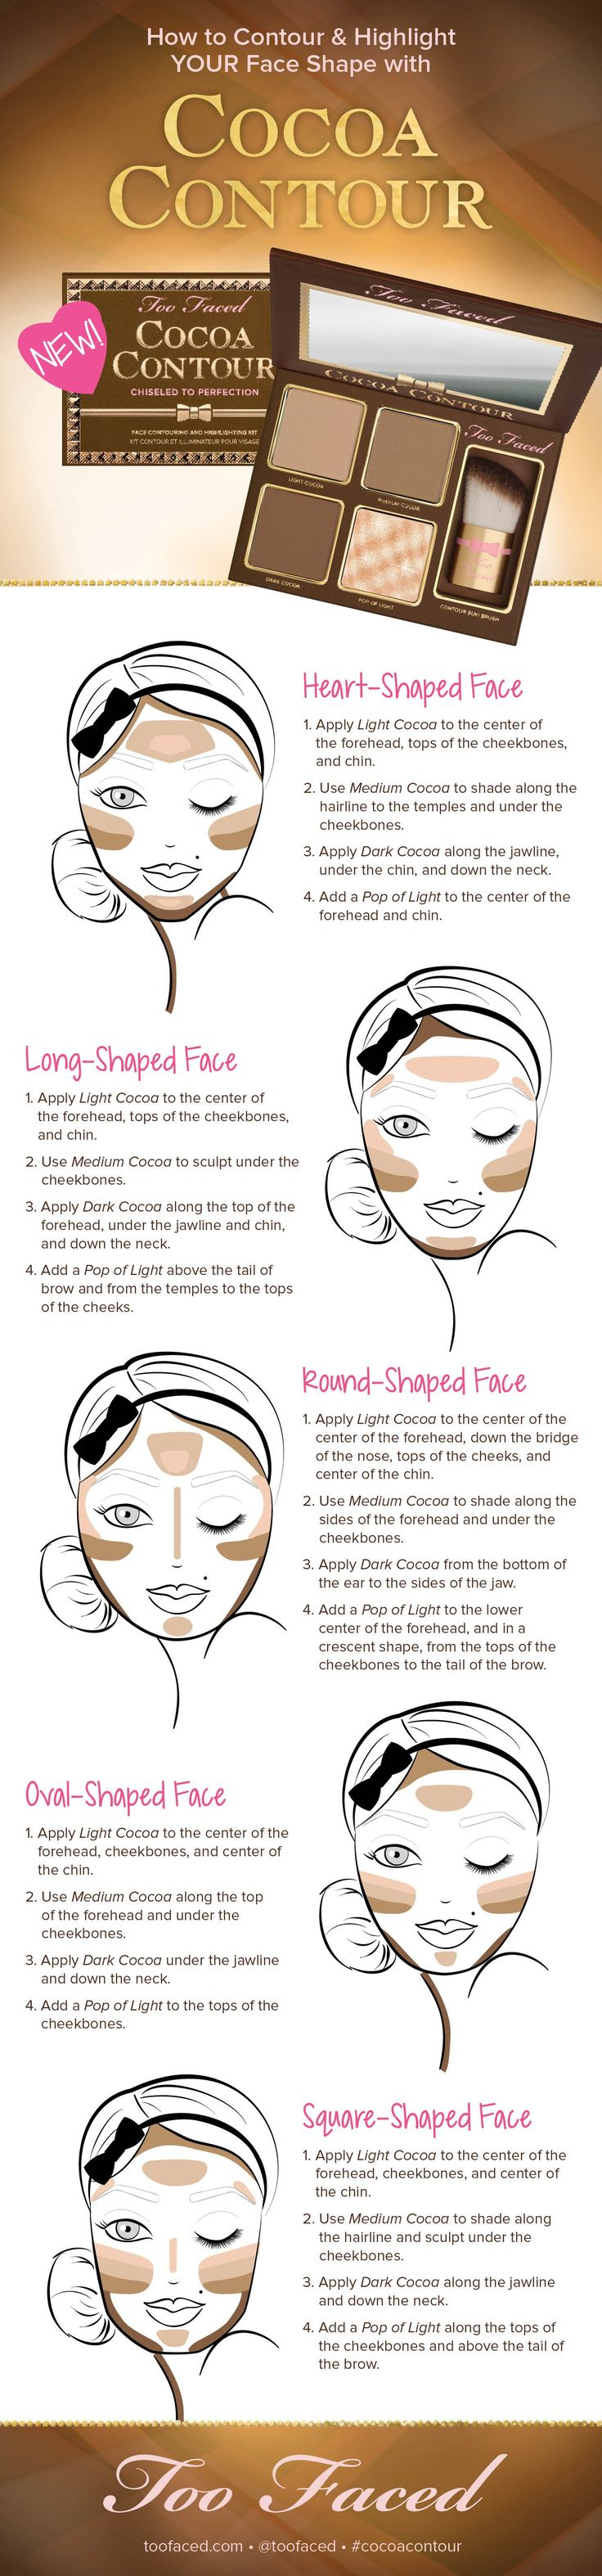 Contouring to your face shape with Too Faced Cocoa Contour Kit